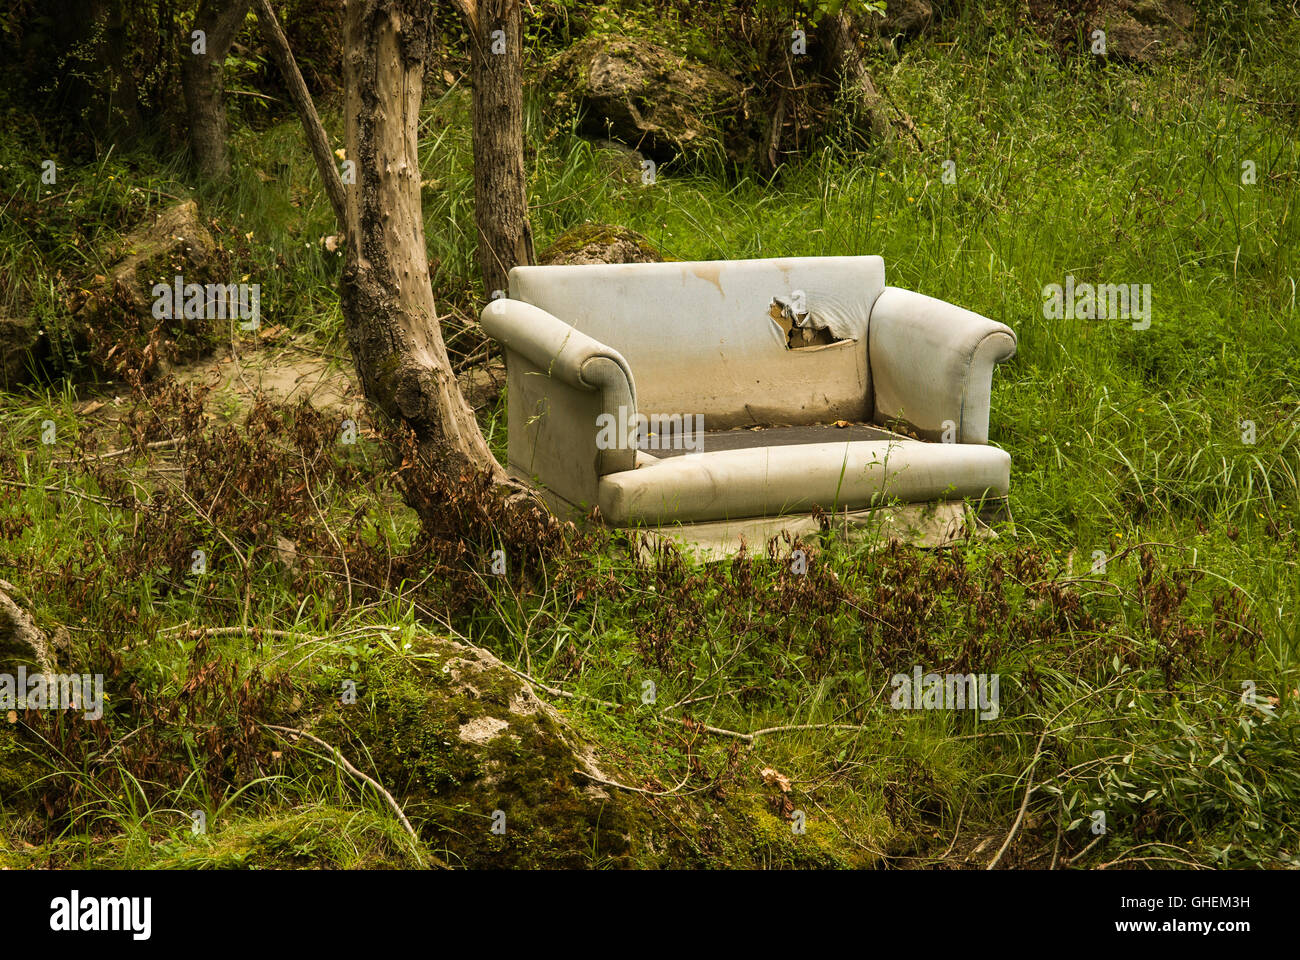 Old sofa dumped in a forest an example of fly tipping or illegal dumping - Stock Image